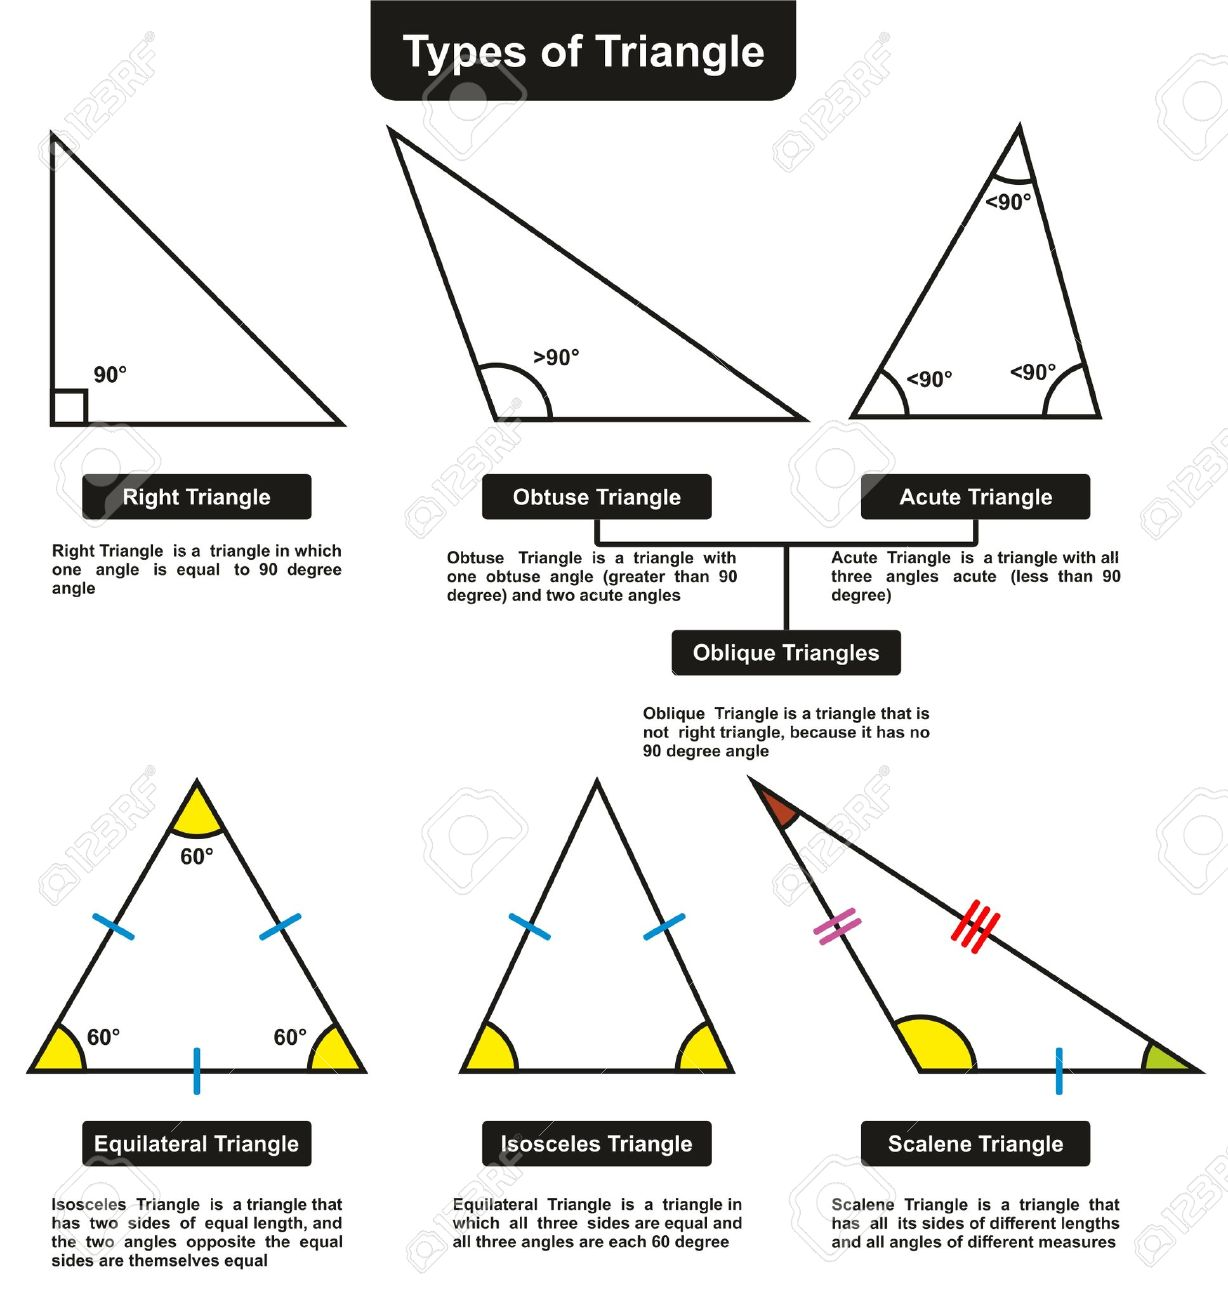 Different Types Of Triangles With Definitions Angles Infographic Diagram Including Right Obtuse Acute Oblique Equilateral Isosceles